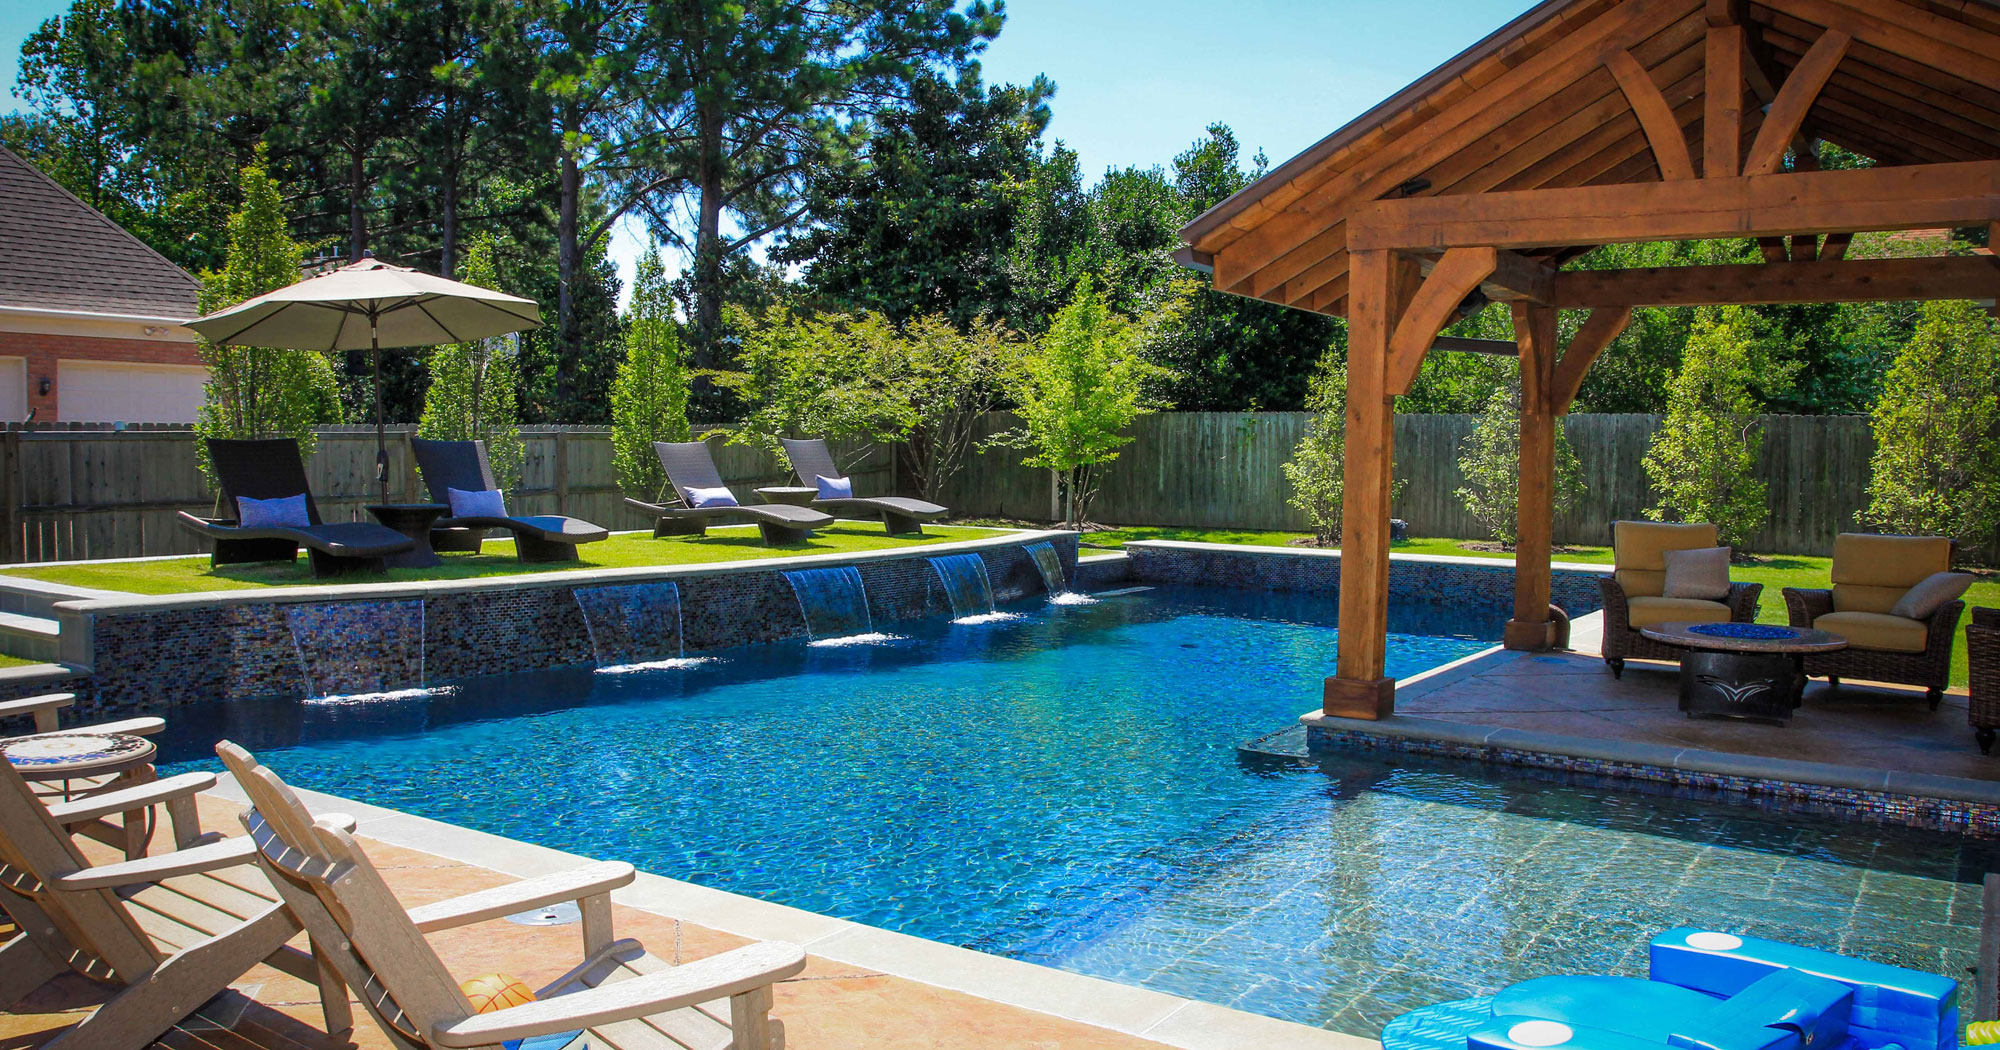 20 Backyard Pool Ideas For The Wealthy Homeowner pertaining to 10 Awesome Ideas How to Make Small Backyard Pool Ideas